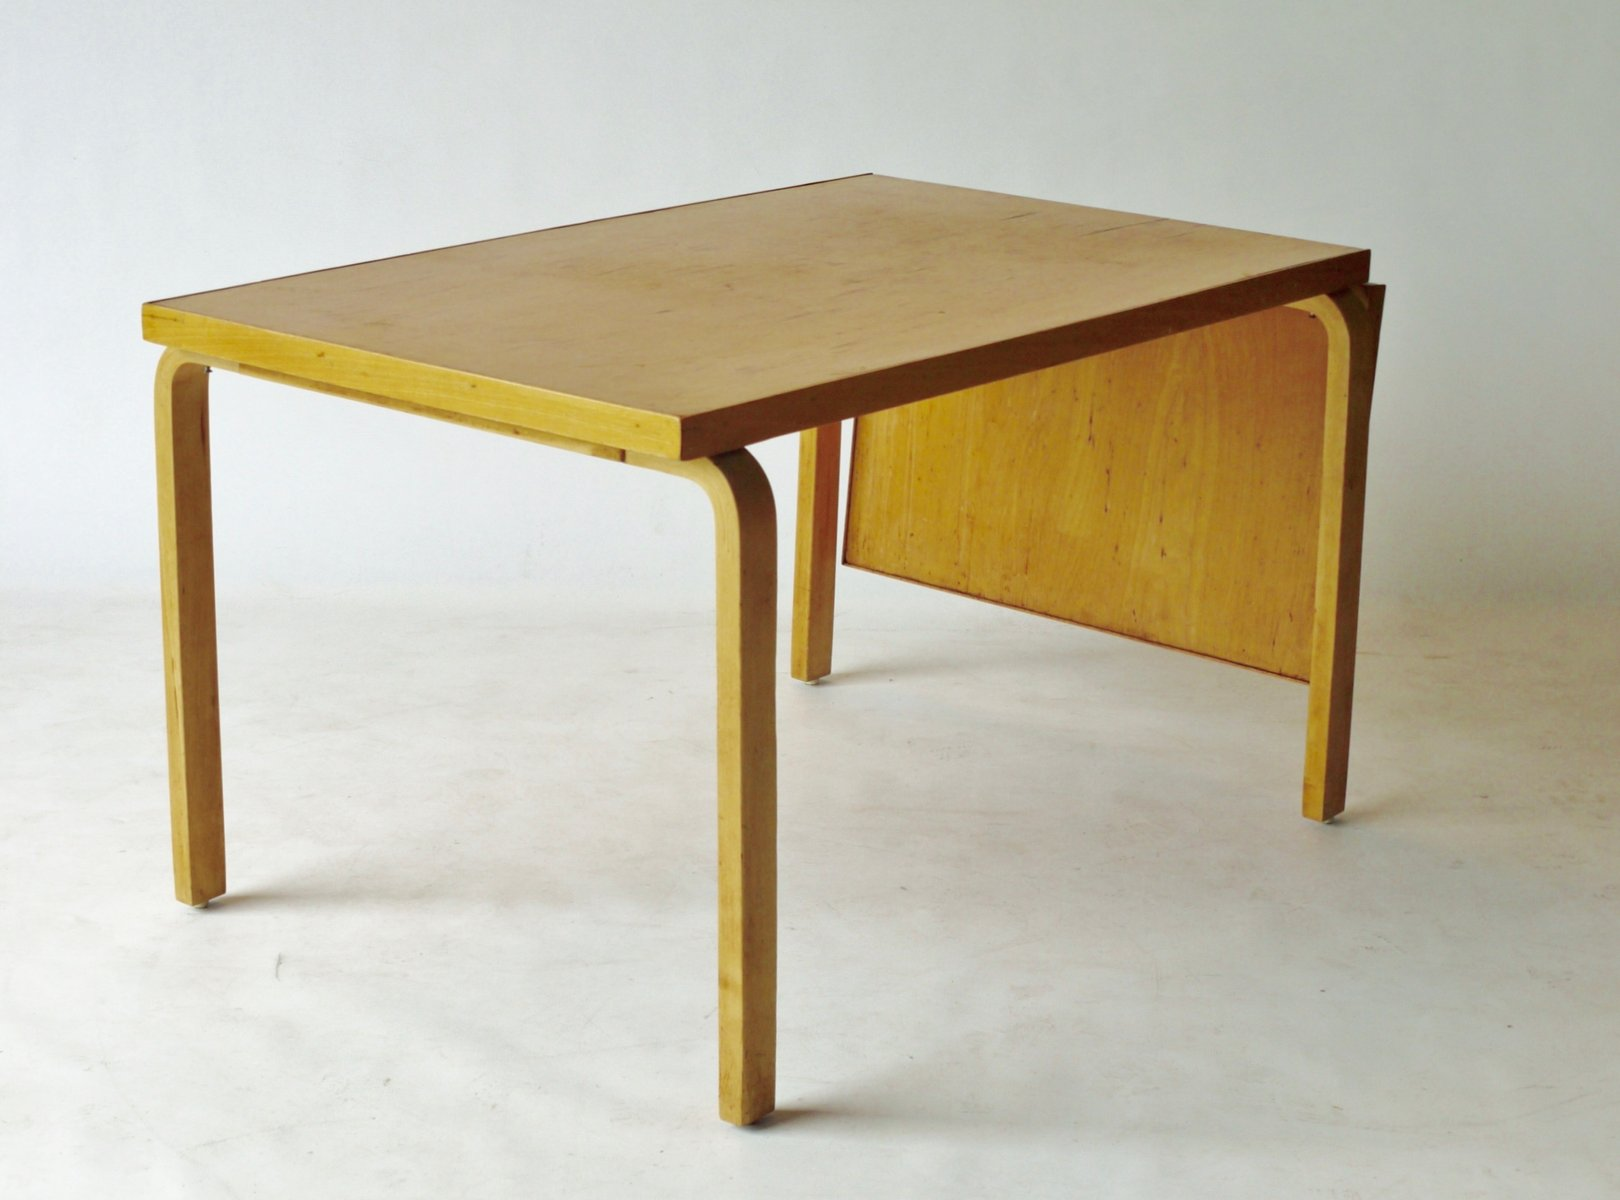 Drop Leaf Extendable Dining Table By Alvar Aalto For Artek, 1940s